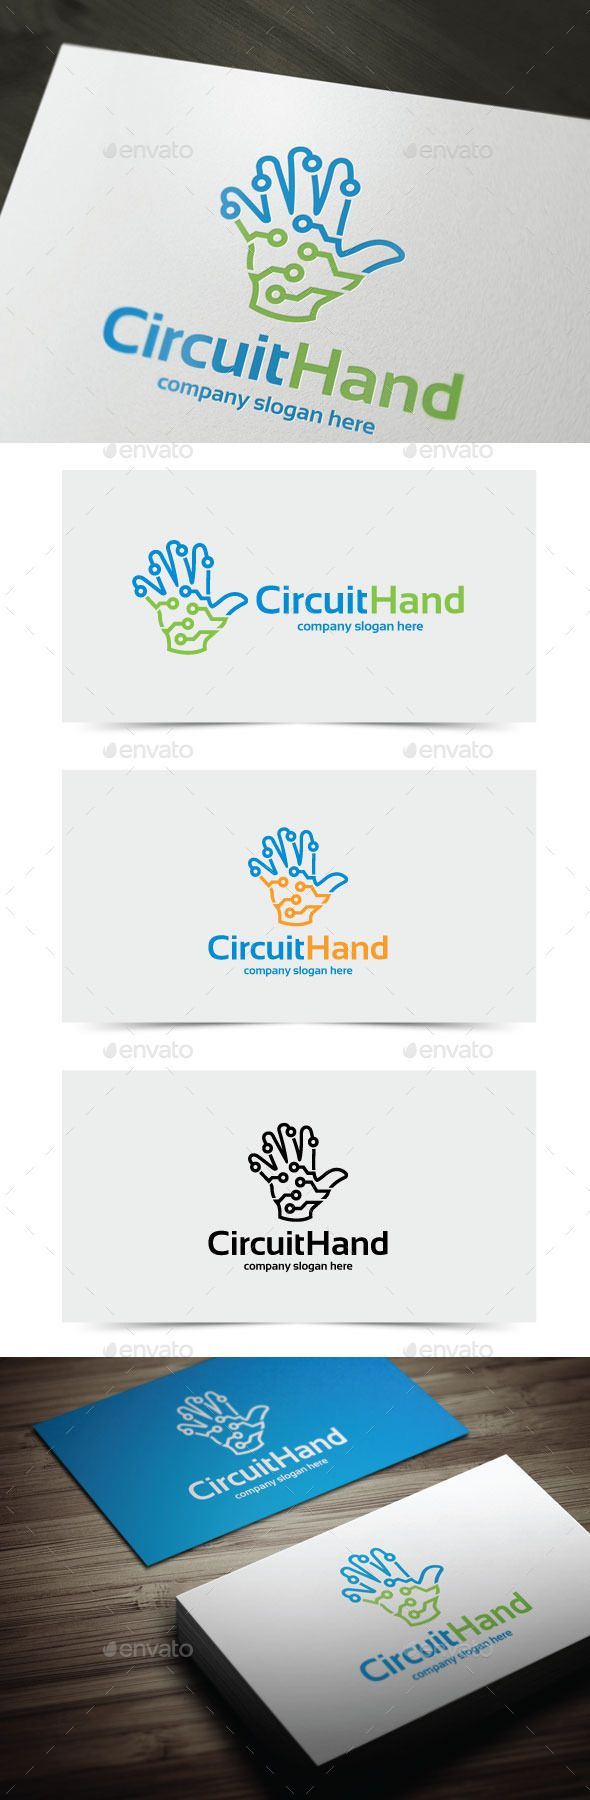 Circuit Hand (Vector EPS, AI Illustrator, Resizable, CS, app, circuit, communications, computer, connection, data, device, digital, entertainment, file, finger, gaming, hand, hands, hardware, host, human, internet, media, mobile, music, network, portal, signal, software, technology, touch, wireless)